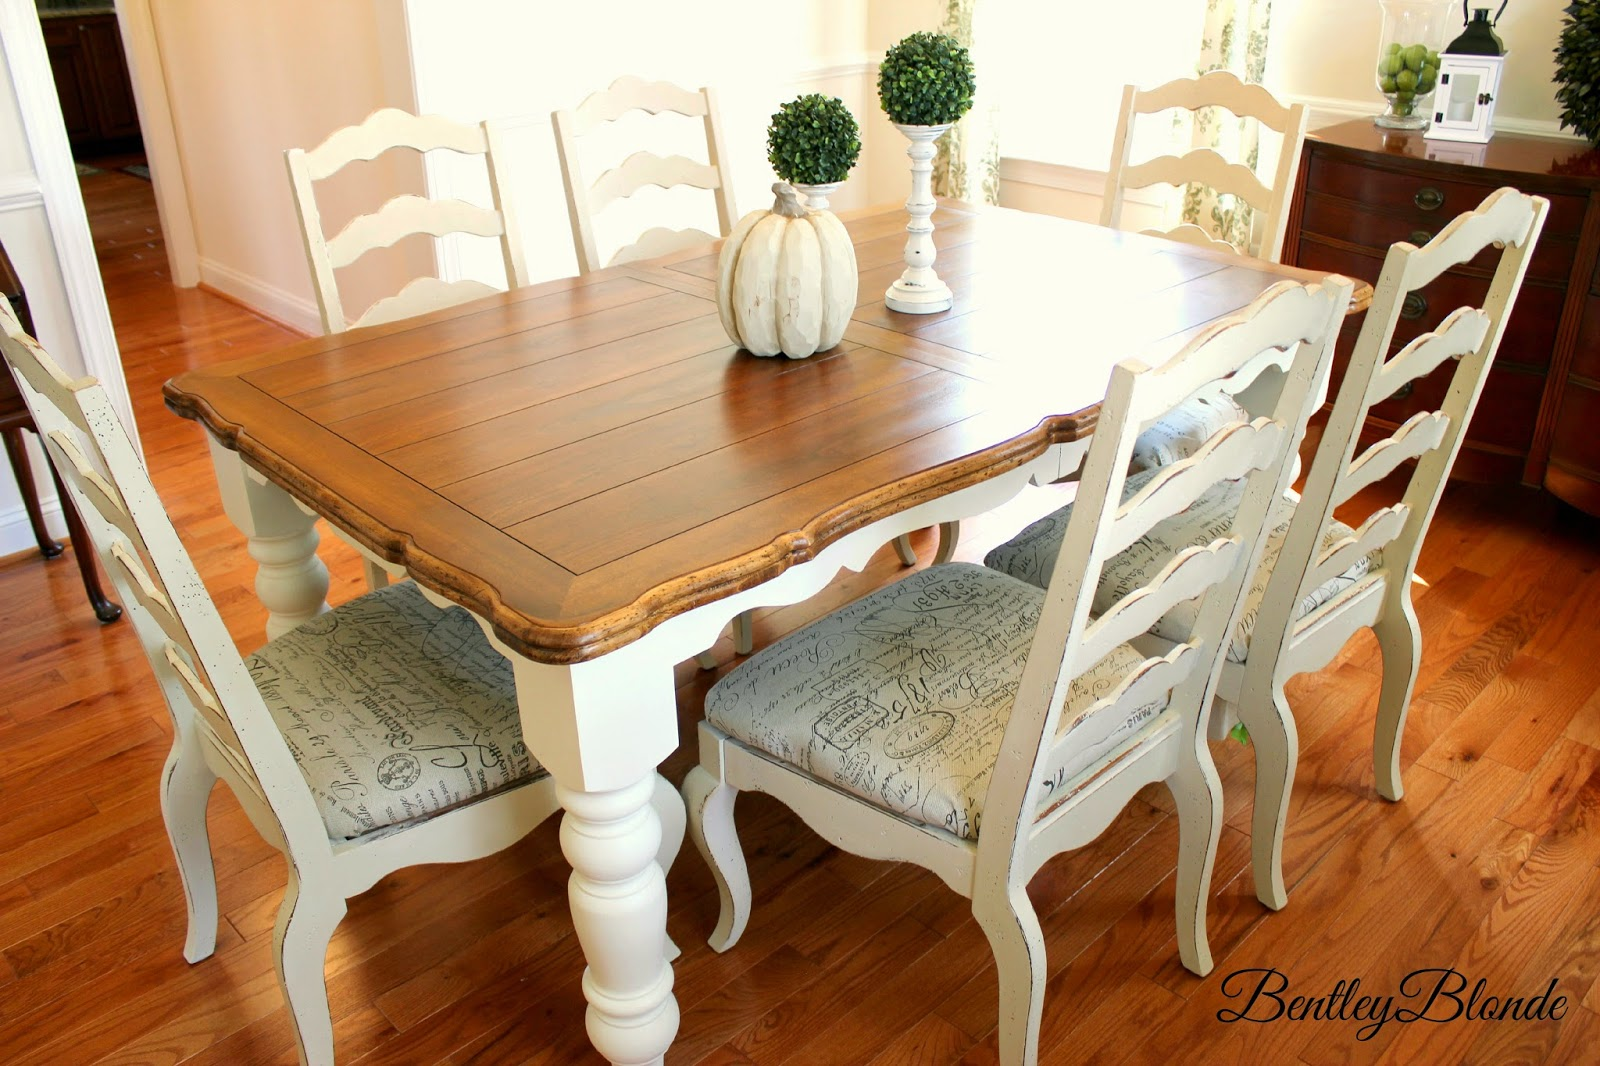 ... White Table Legs U0026 Ivory Chairs. I Canu0027t Wait To Sit Around This Table  With Family, Enjoying Many Delicious Meals And Memories Together In The  Future :)